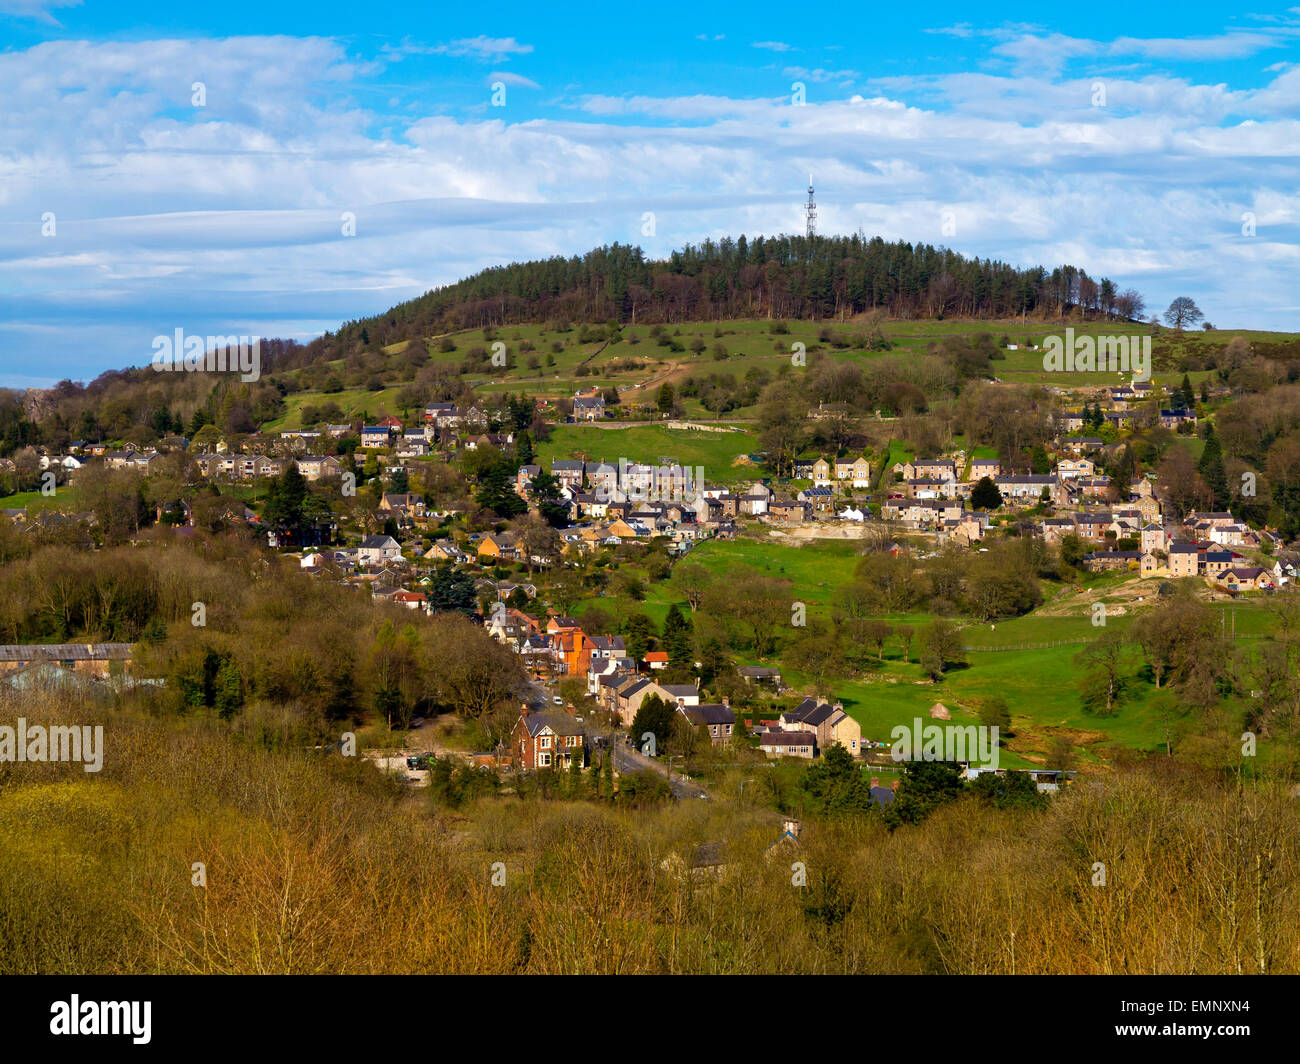 A view of rural housing near Wirksworth in the Derbyshire Dales England UK - Stock Image